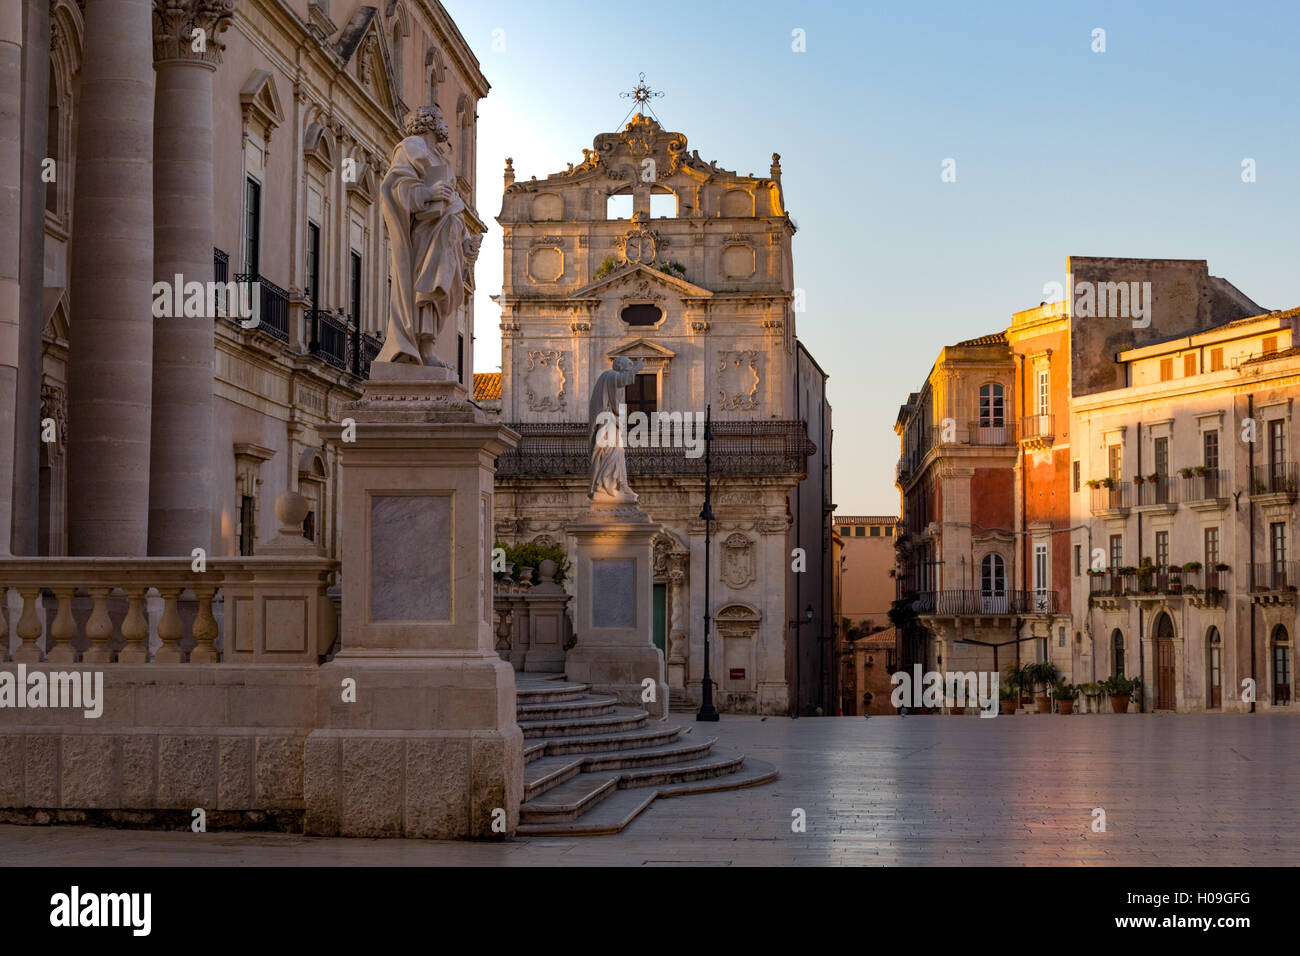 The Cathedral and Piazza Duomo in early morning on the tiny island of Ortygia, UNESCO, Syracuse, Sicily, Italy Stock Photo